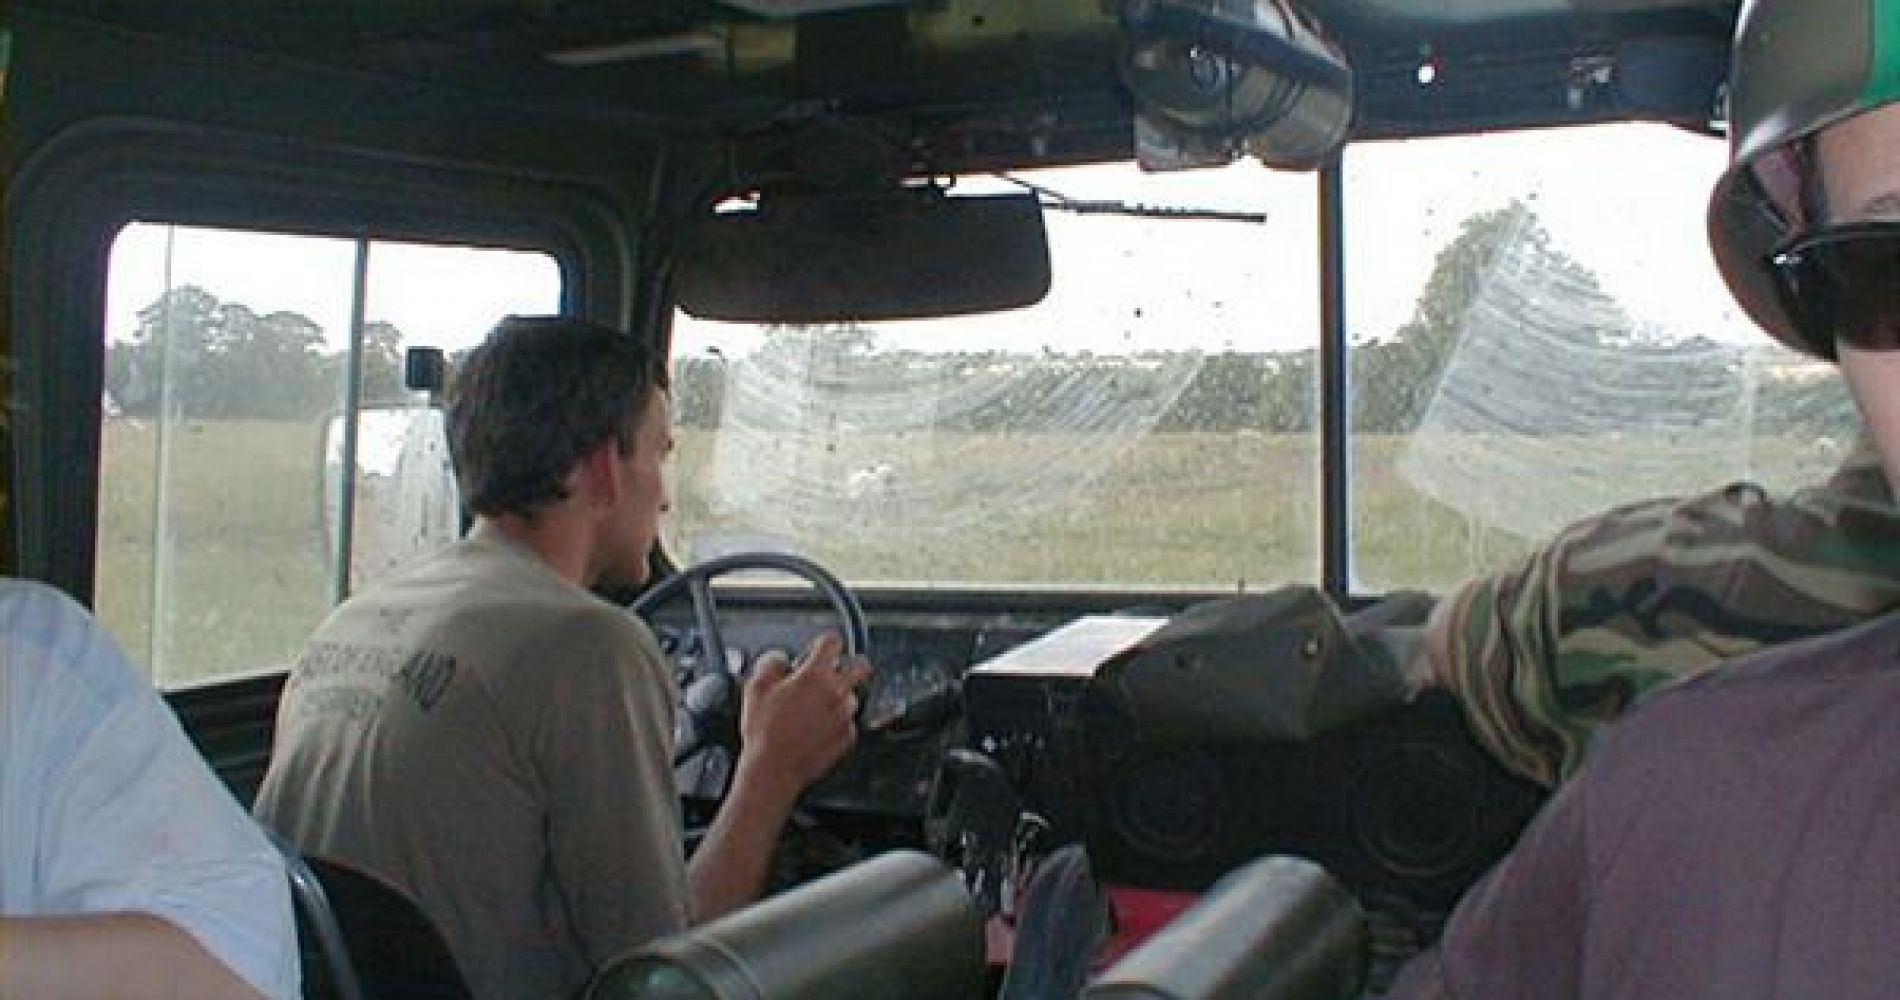 Dads and Lads Tank driving for Four in United Kingdom